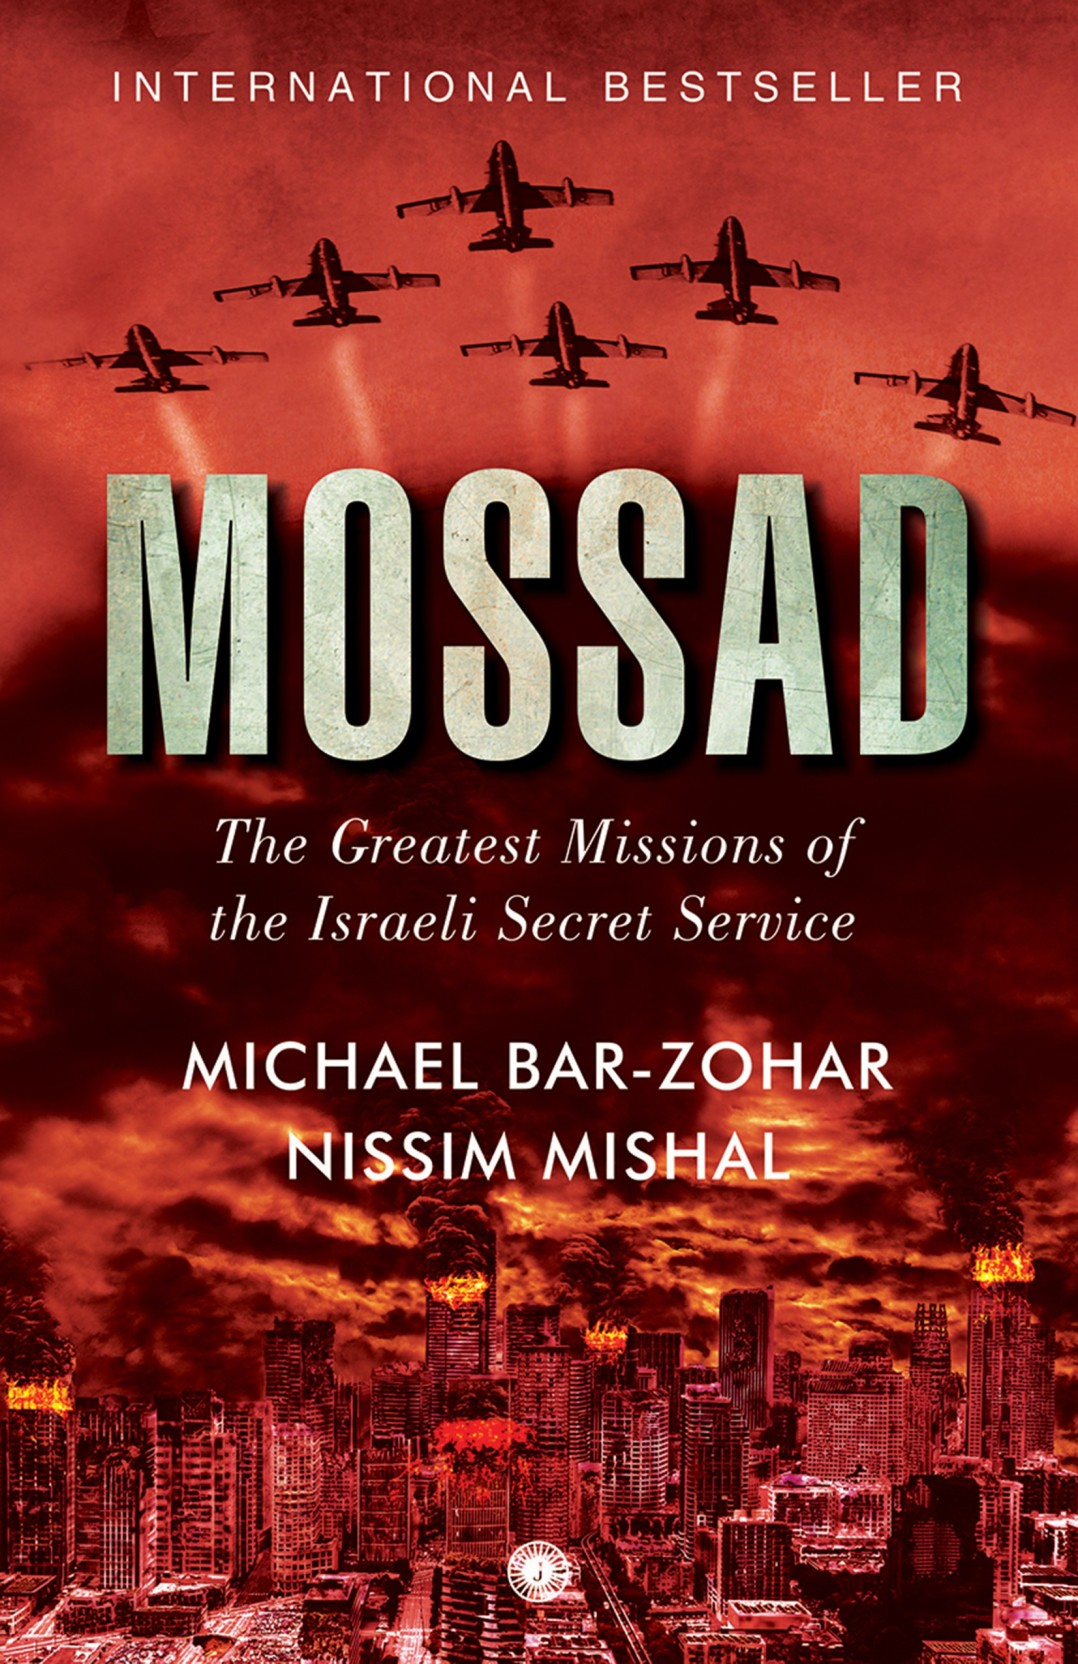 Mossad Paperback – 9 March 2016